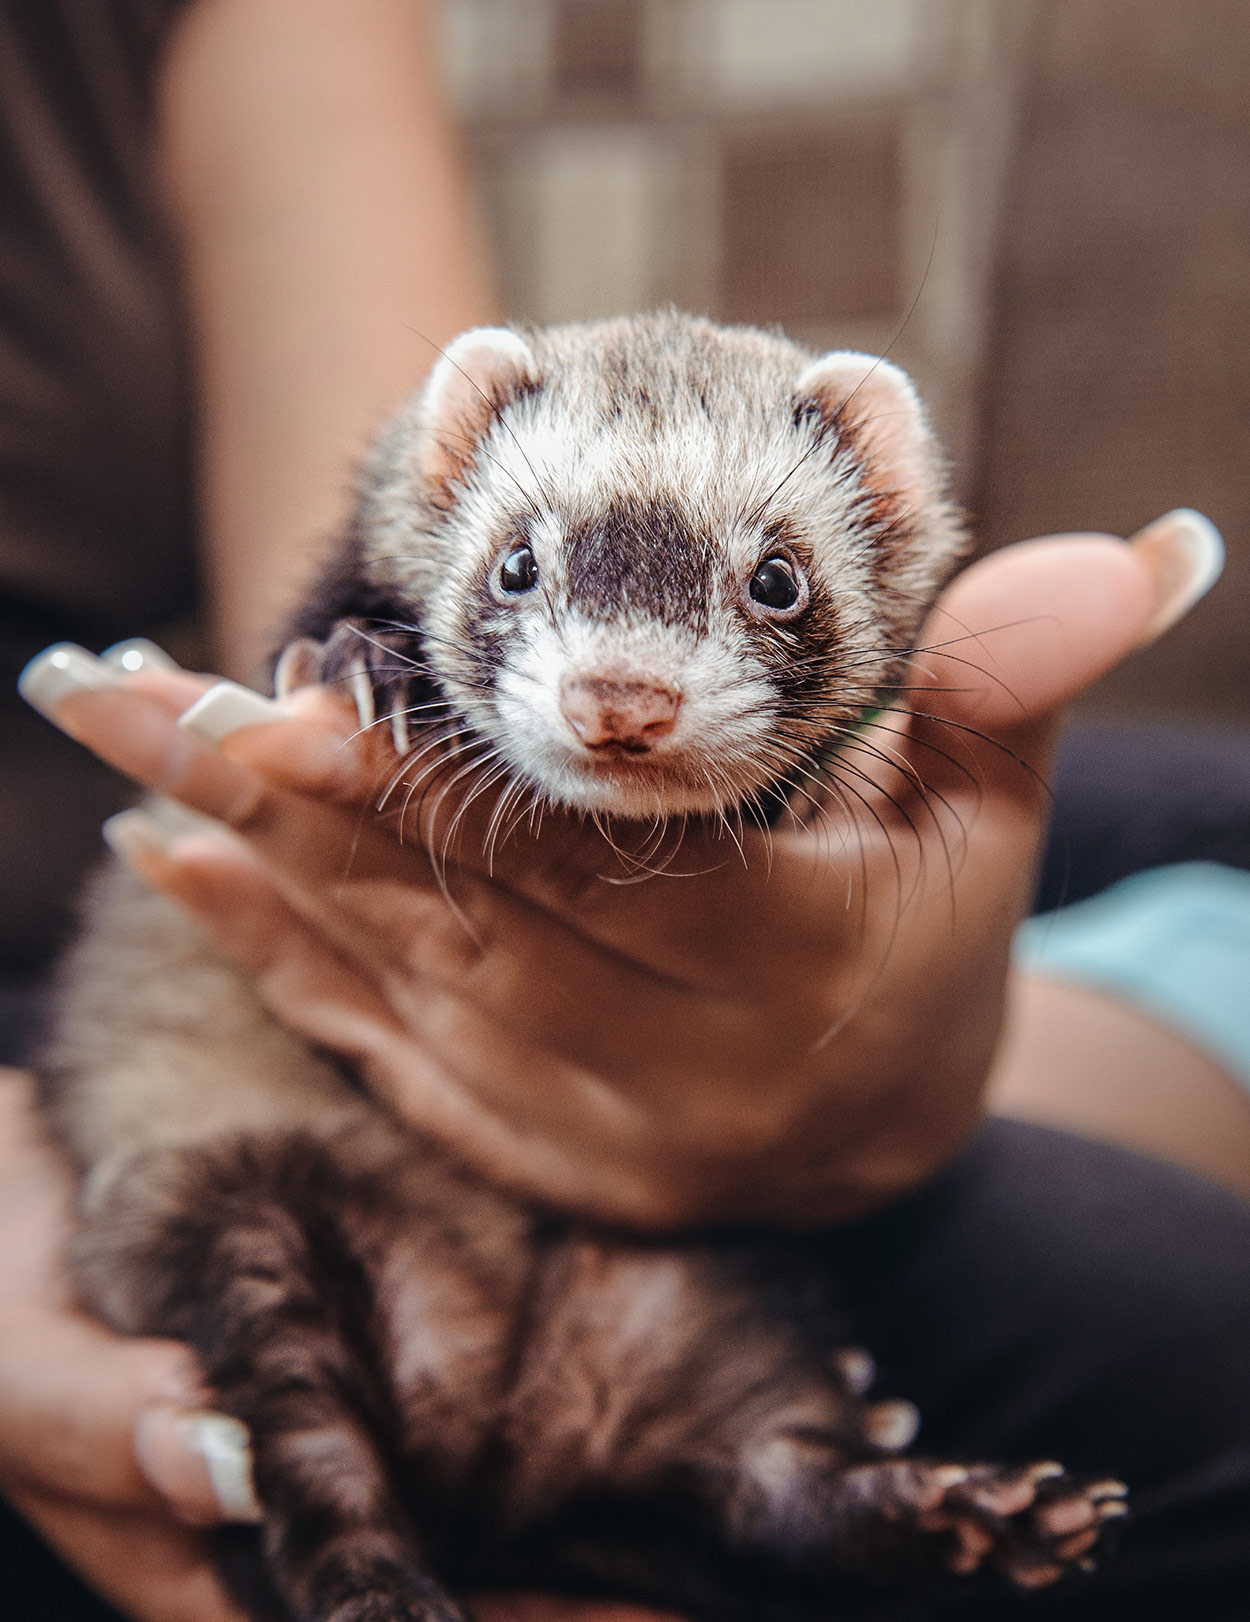 adrenal disease in ferrets